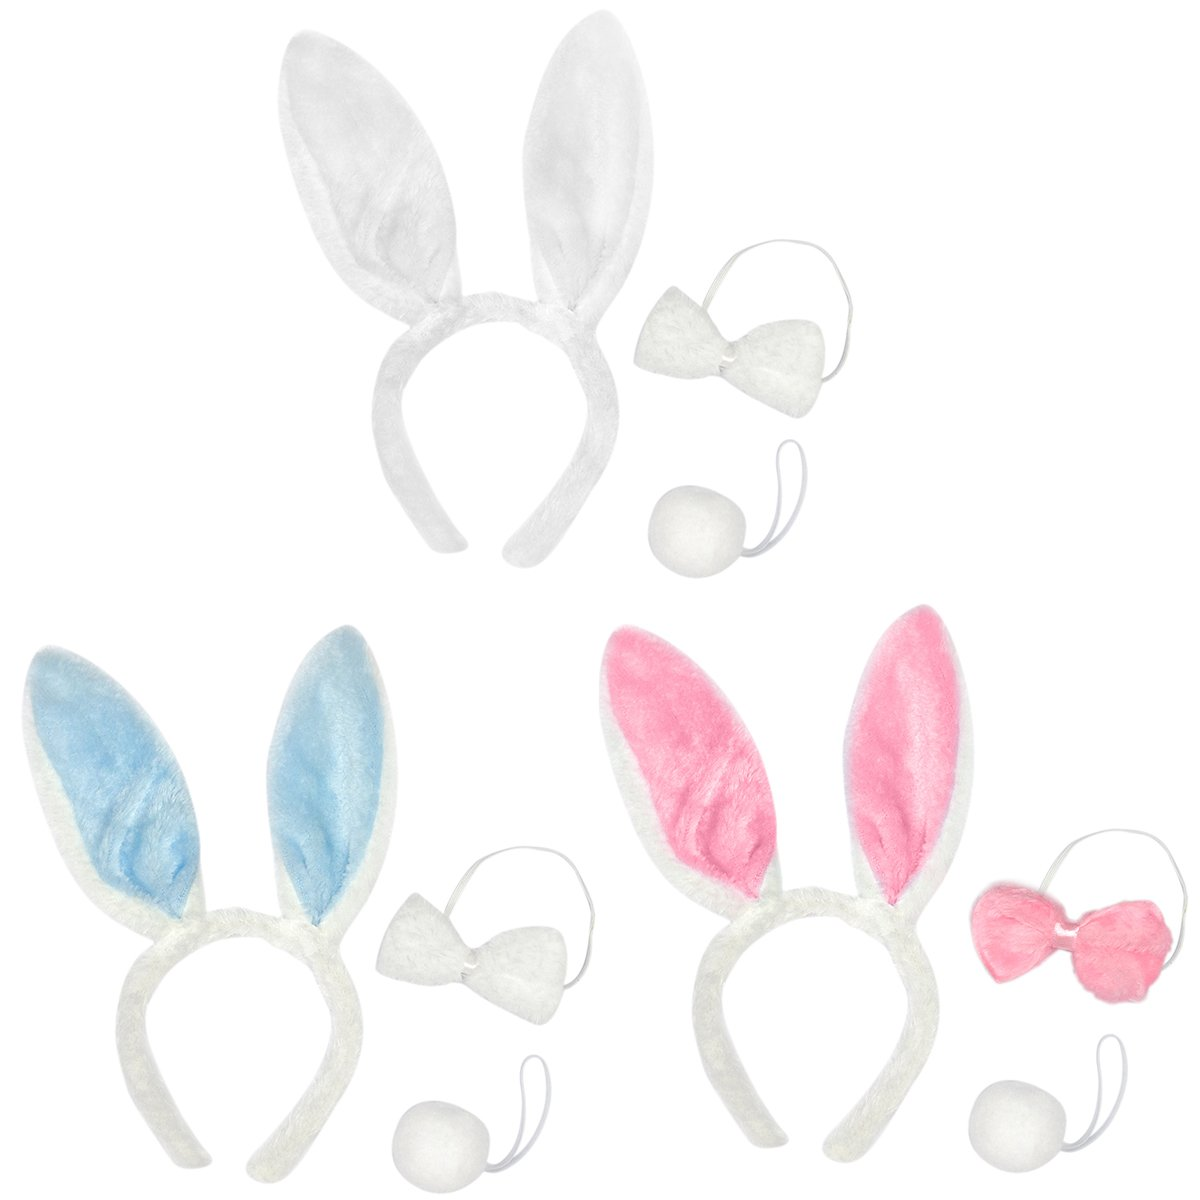 Toptie Wholesale Set of 3 Bunny Ears Headband, Soft Touch Plush Party Accessory-Pink-1SET PTGH-DI92612_PINK-1SET